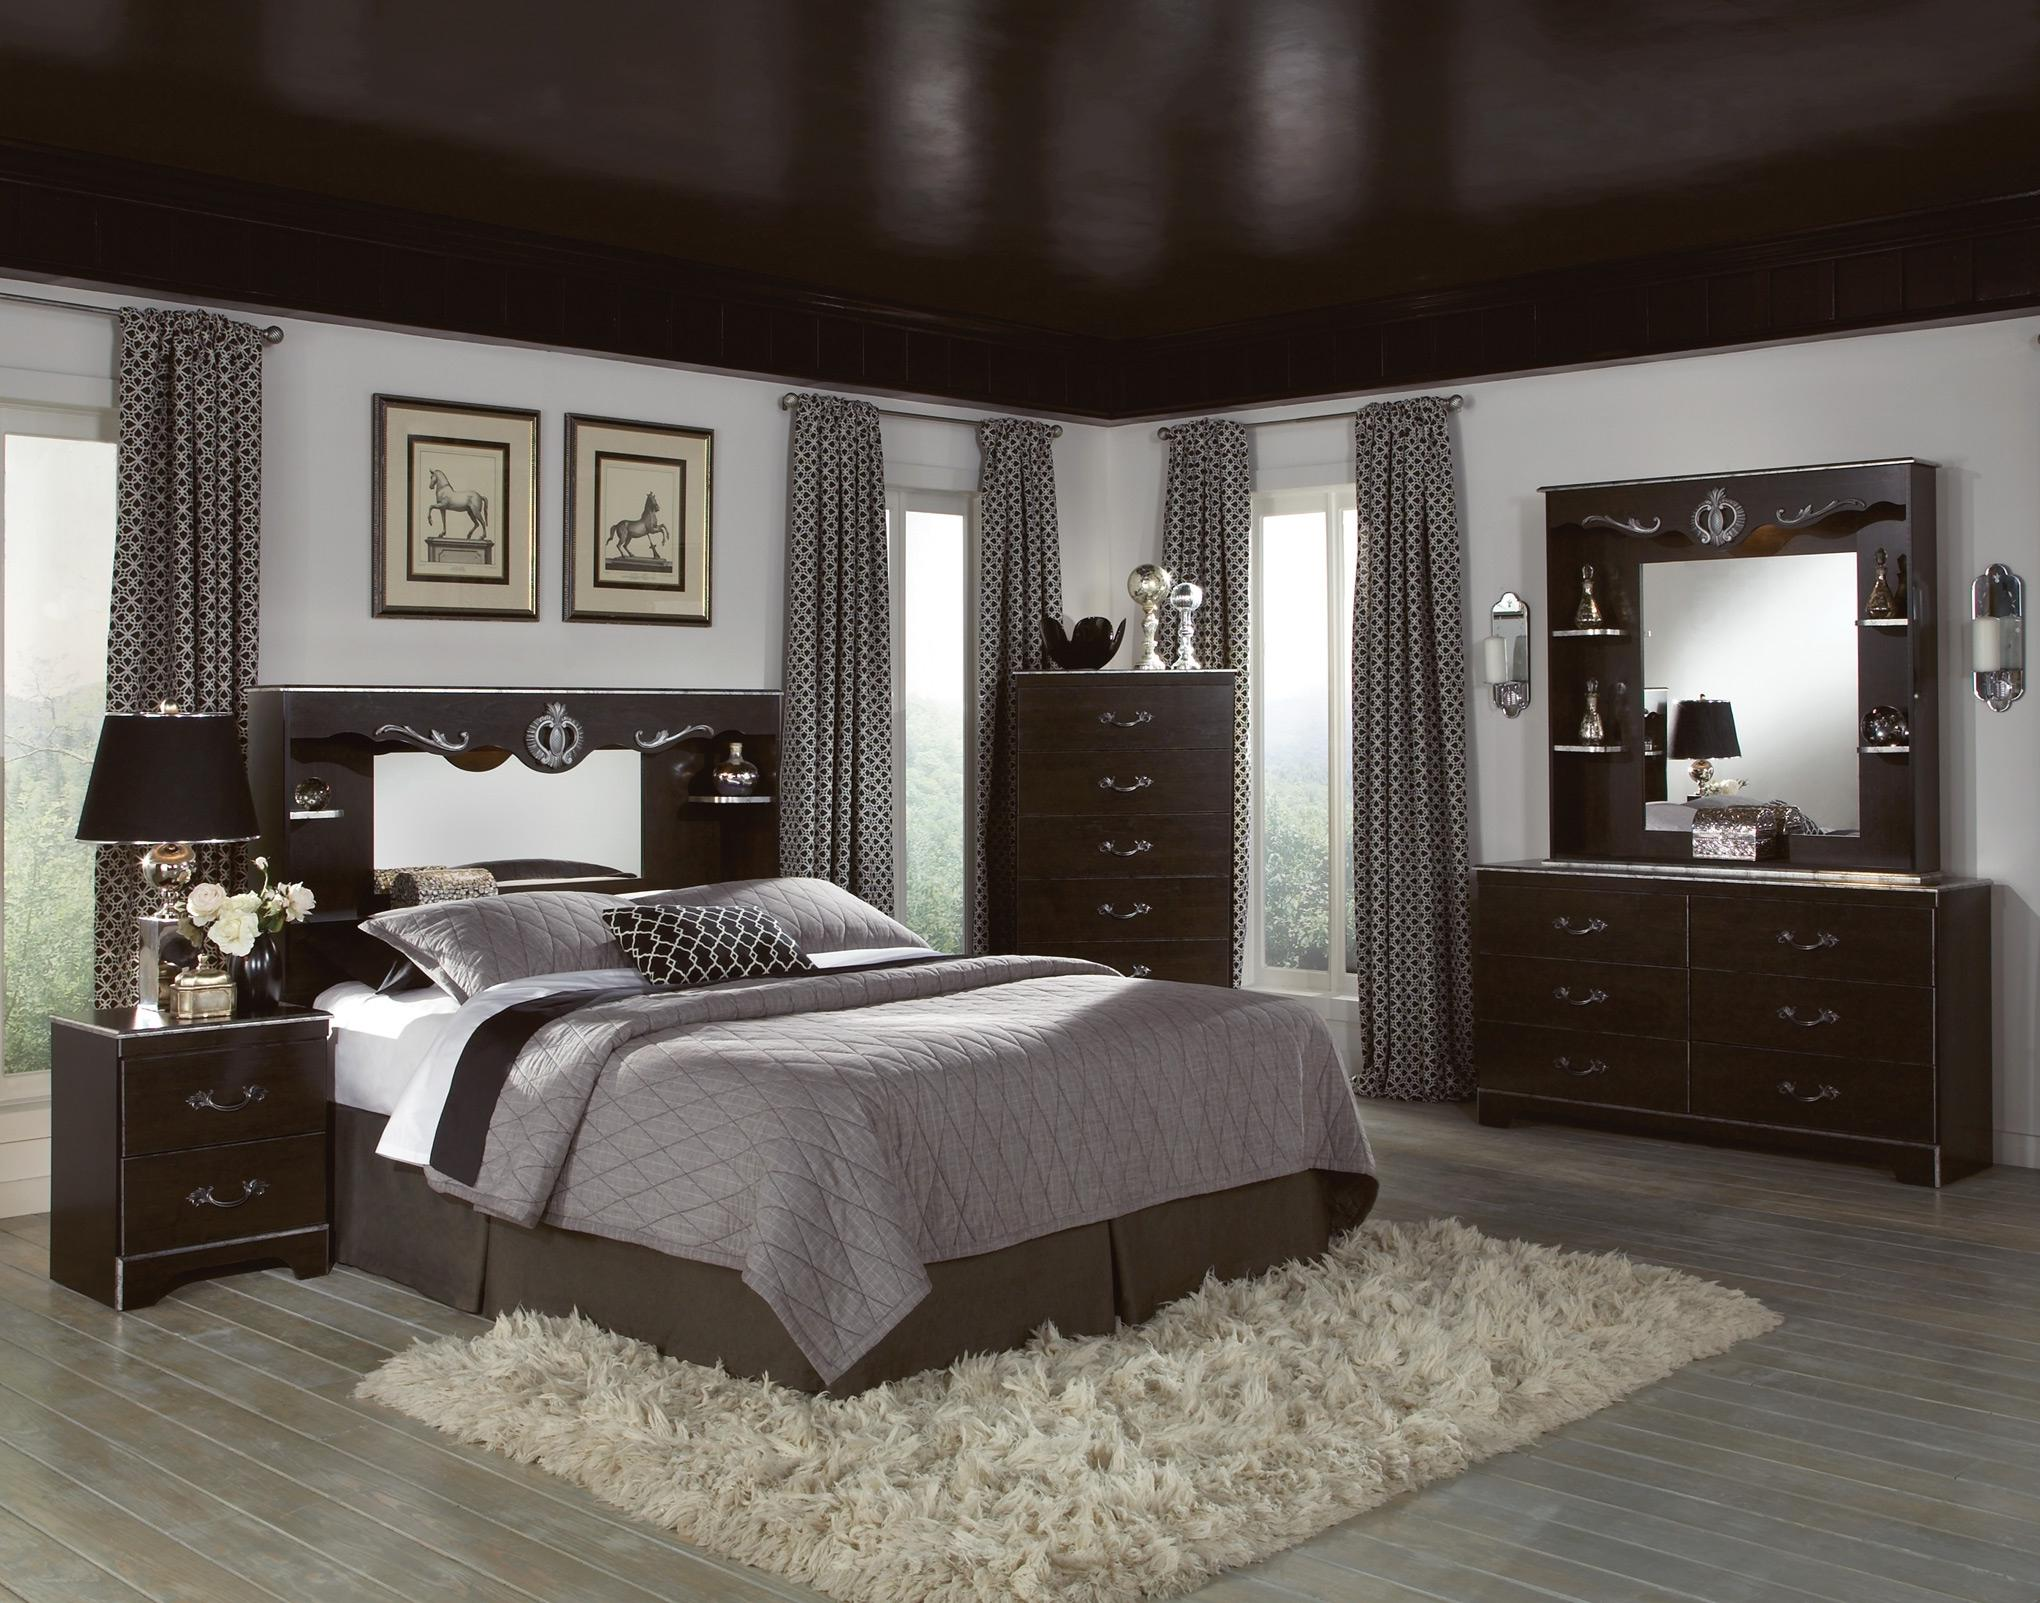 bedroom color dark wood 30+ Wood Flooring Ideas and Trends for Your Stunning Bedroom  3198 X 2400